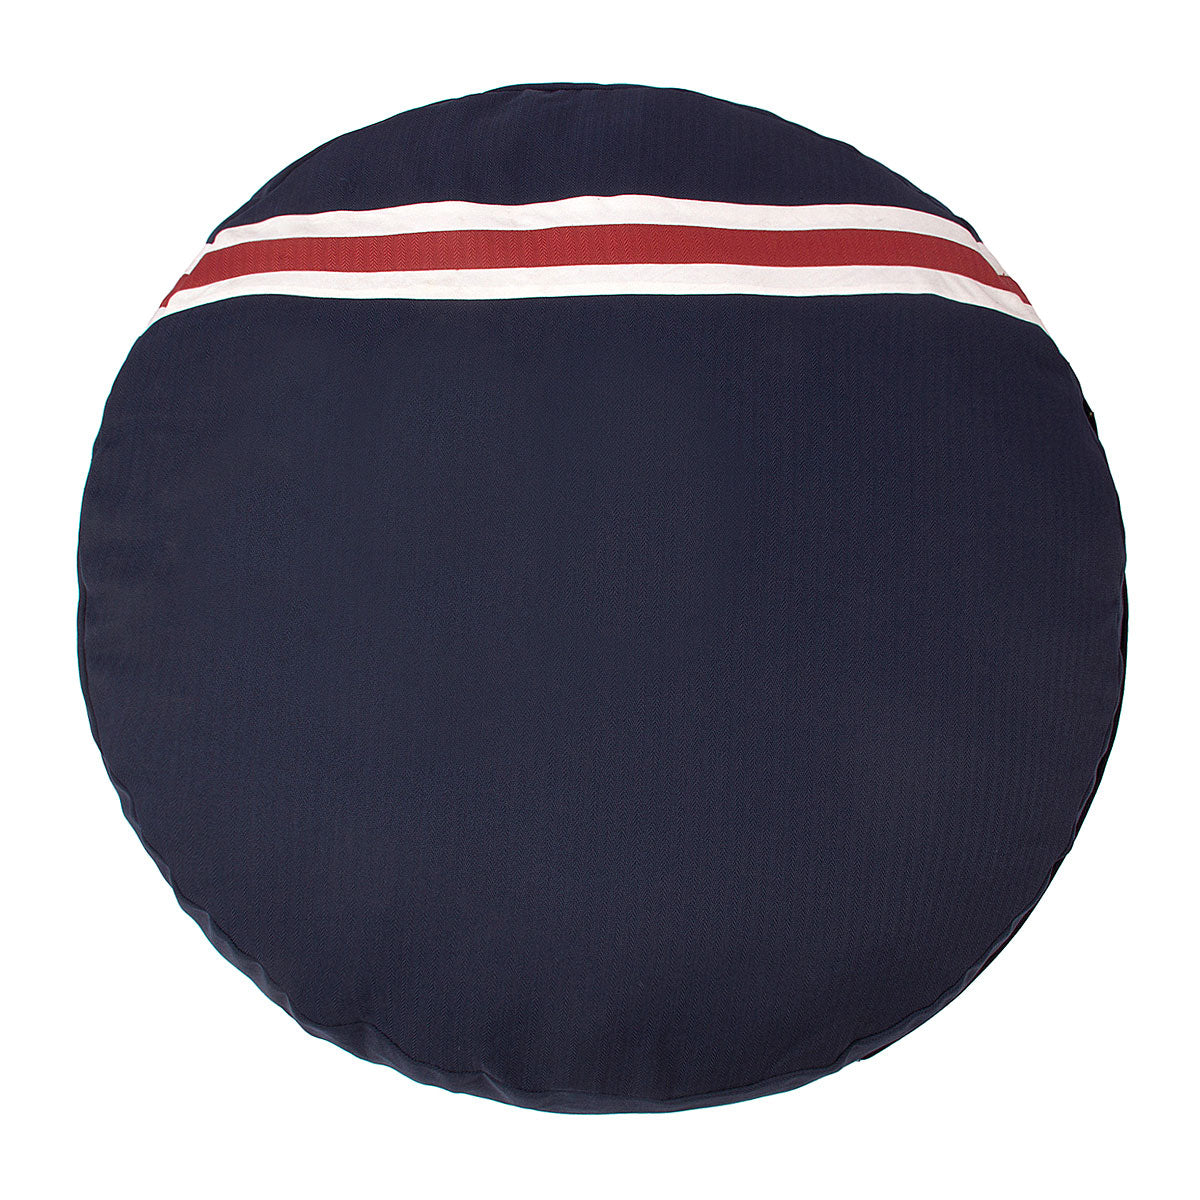 Halo Sam Round Dog Bed_2